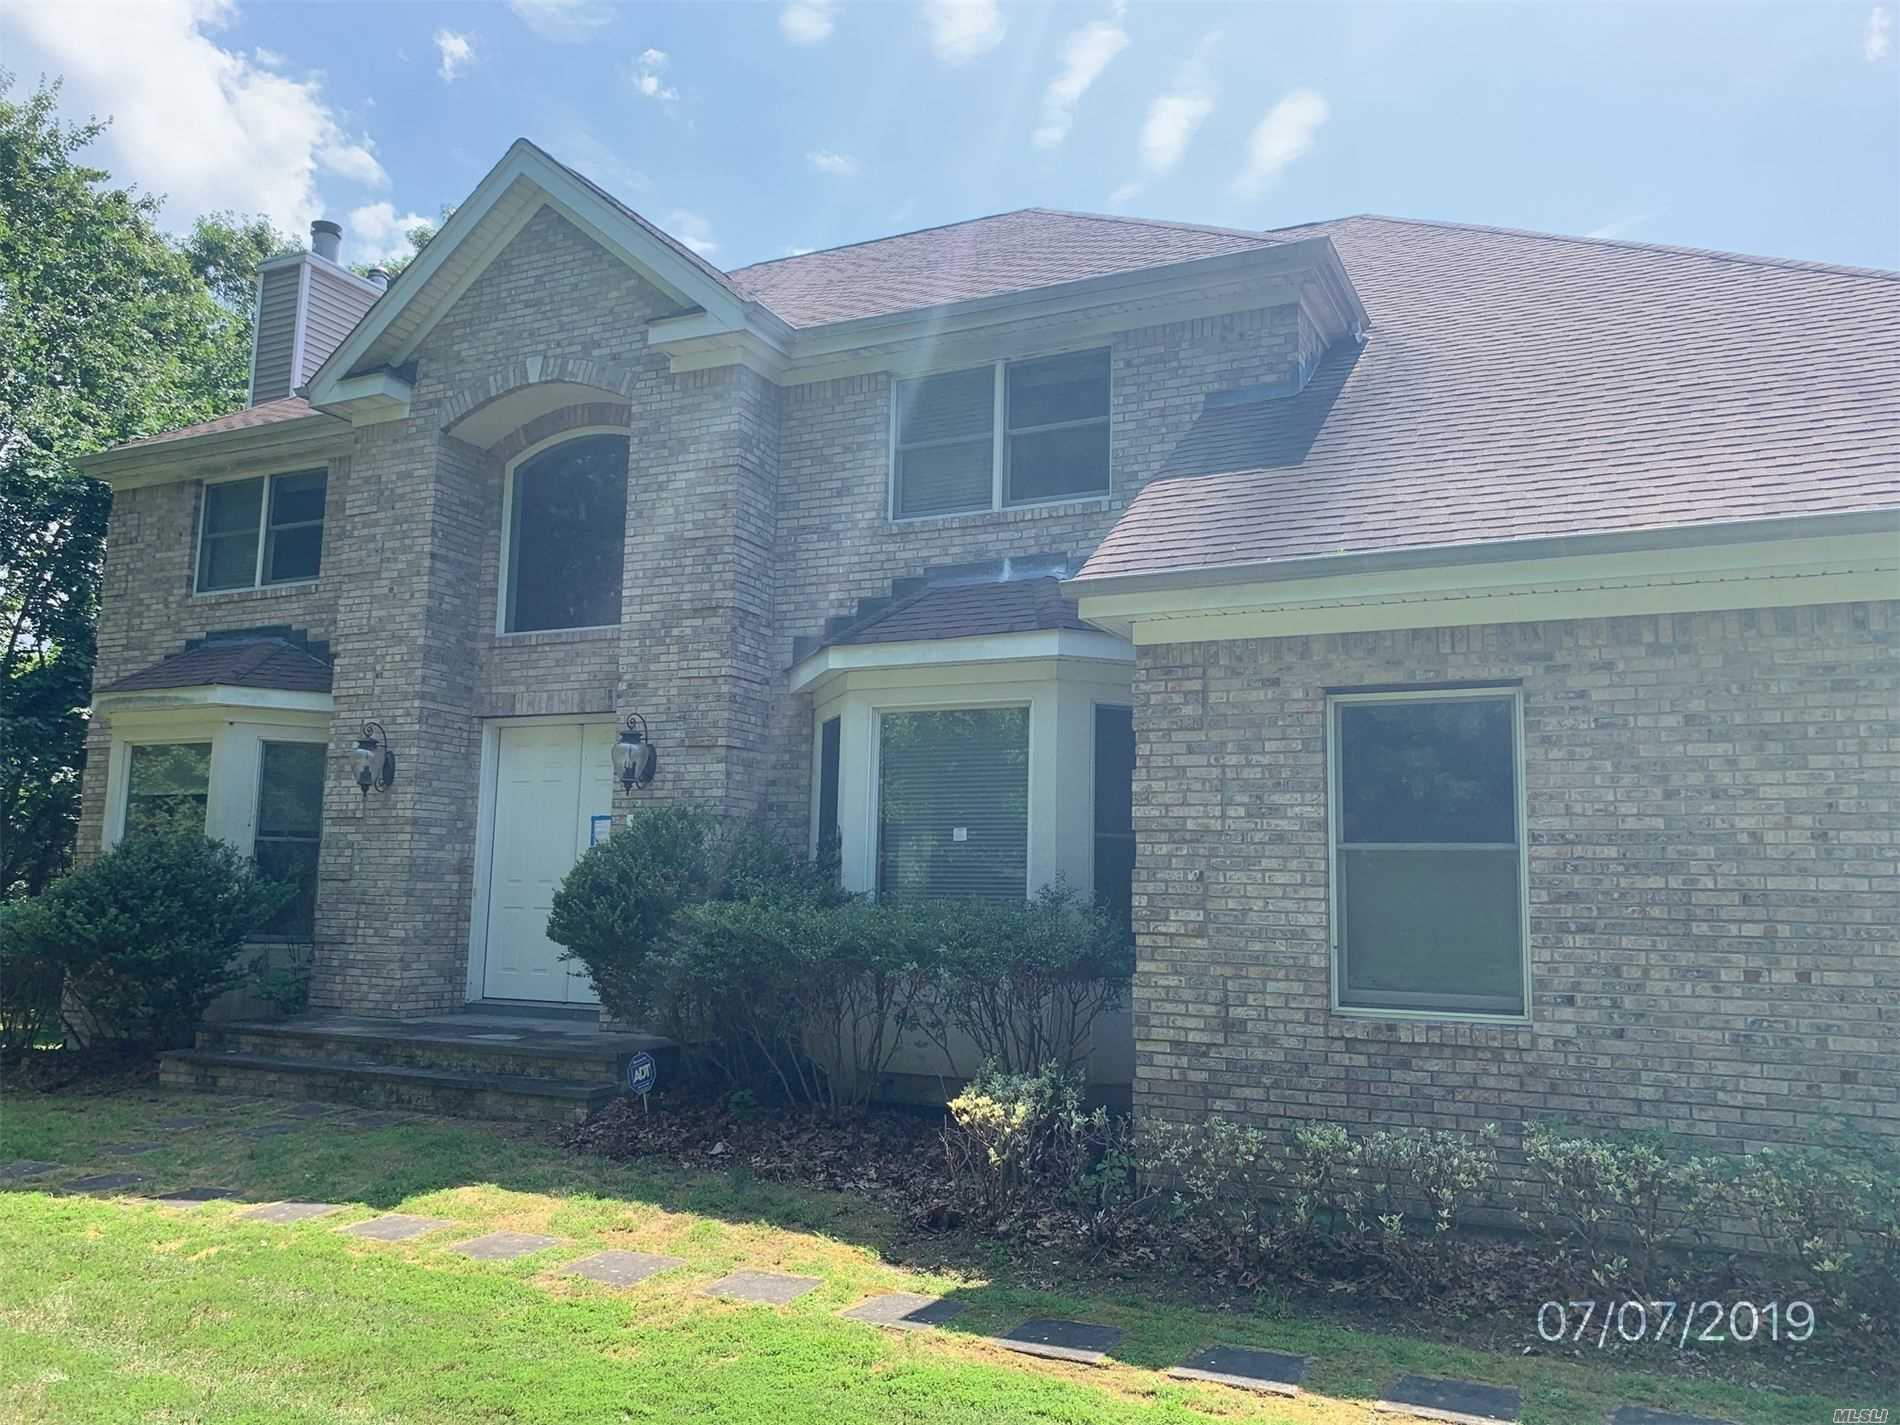 This Is A Bank Owned Property Colonial Spacious 5 Bedroom, 2.5Baths. This Home Offers Endless Possibilities For The New Owners. It won't last!!